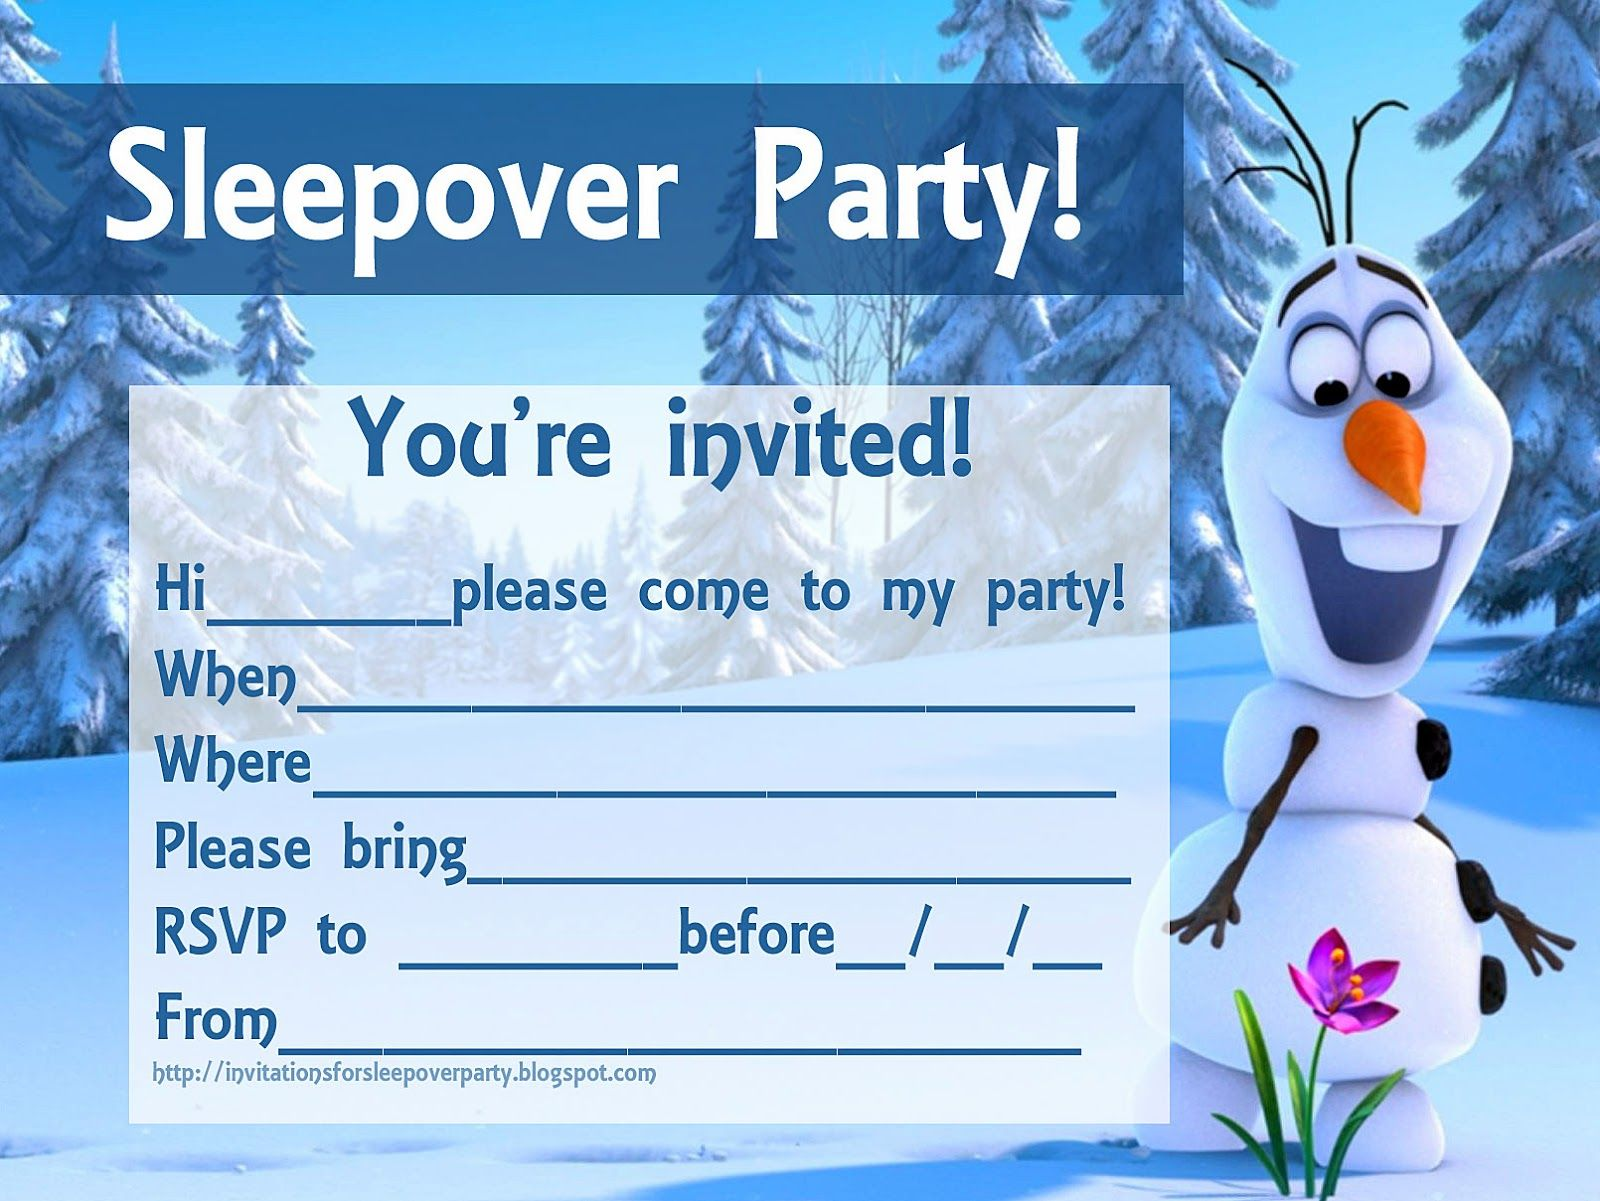 6 year old birthday girl invitations frozen | ... invitations from ...